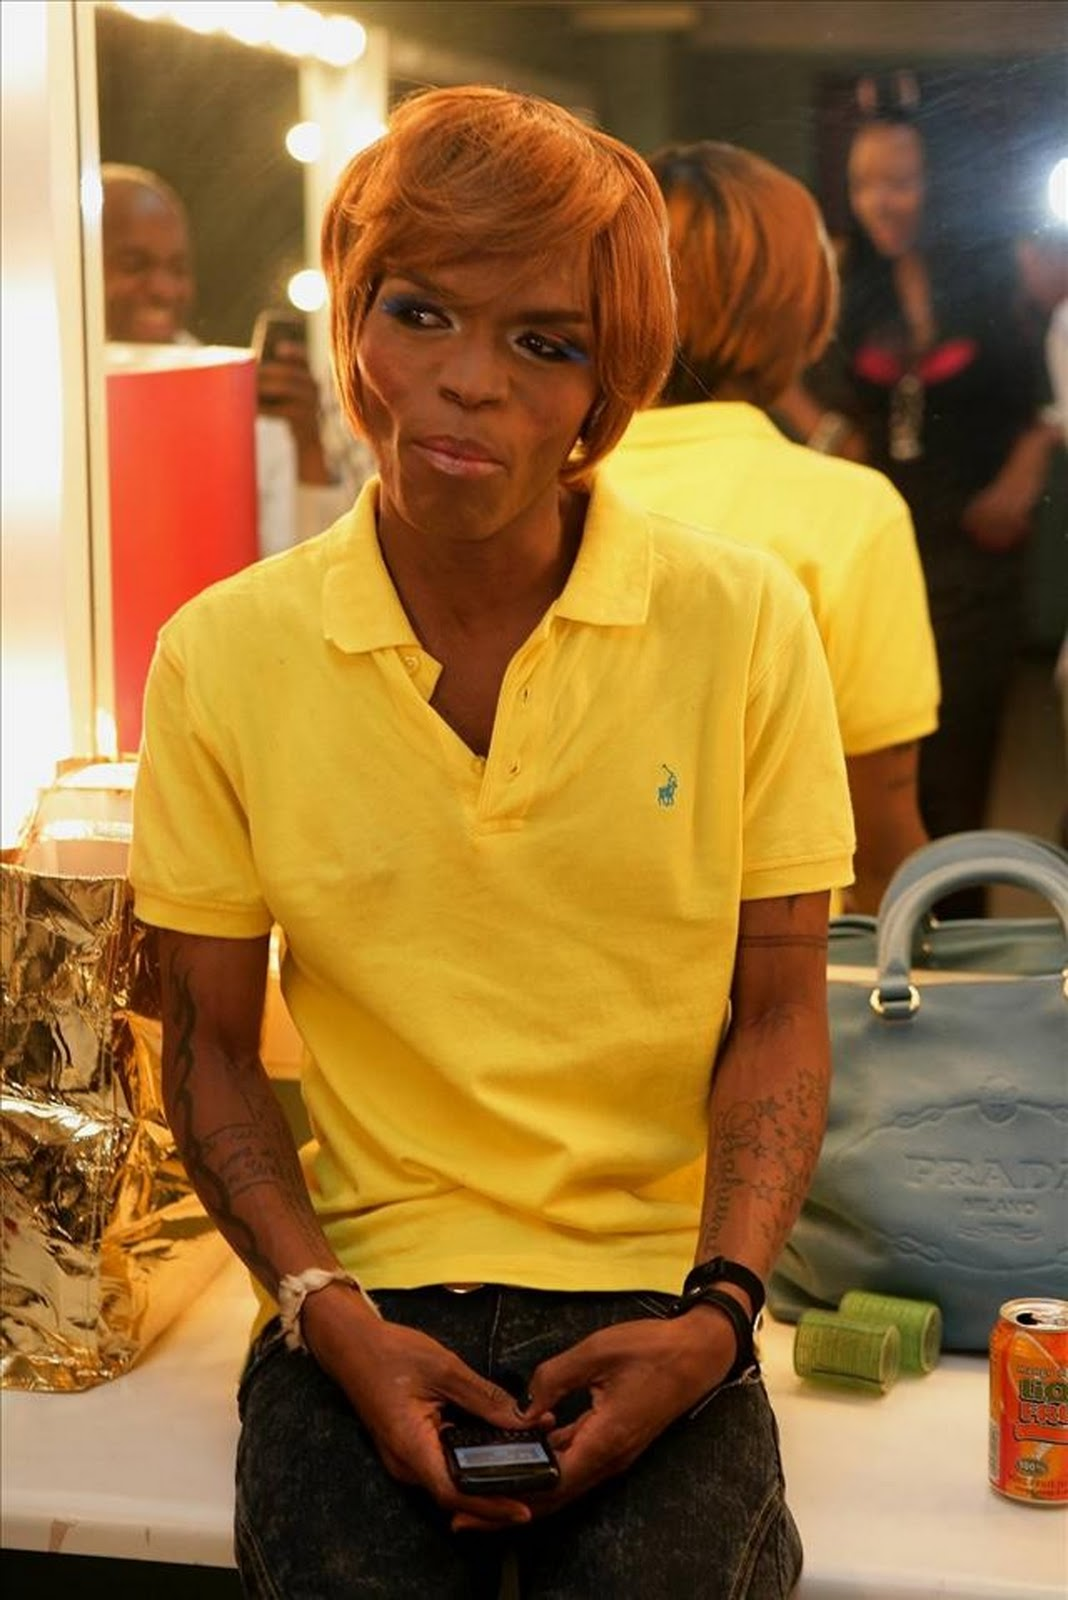 Somizi S Frail Look Makes The Front Page Phil Mphela Blog